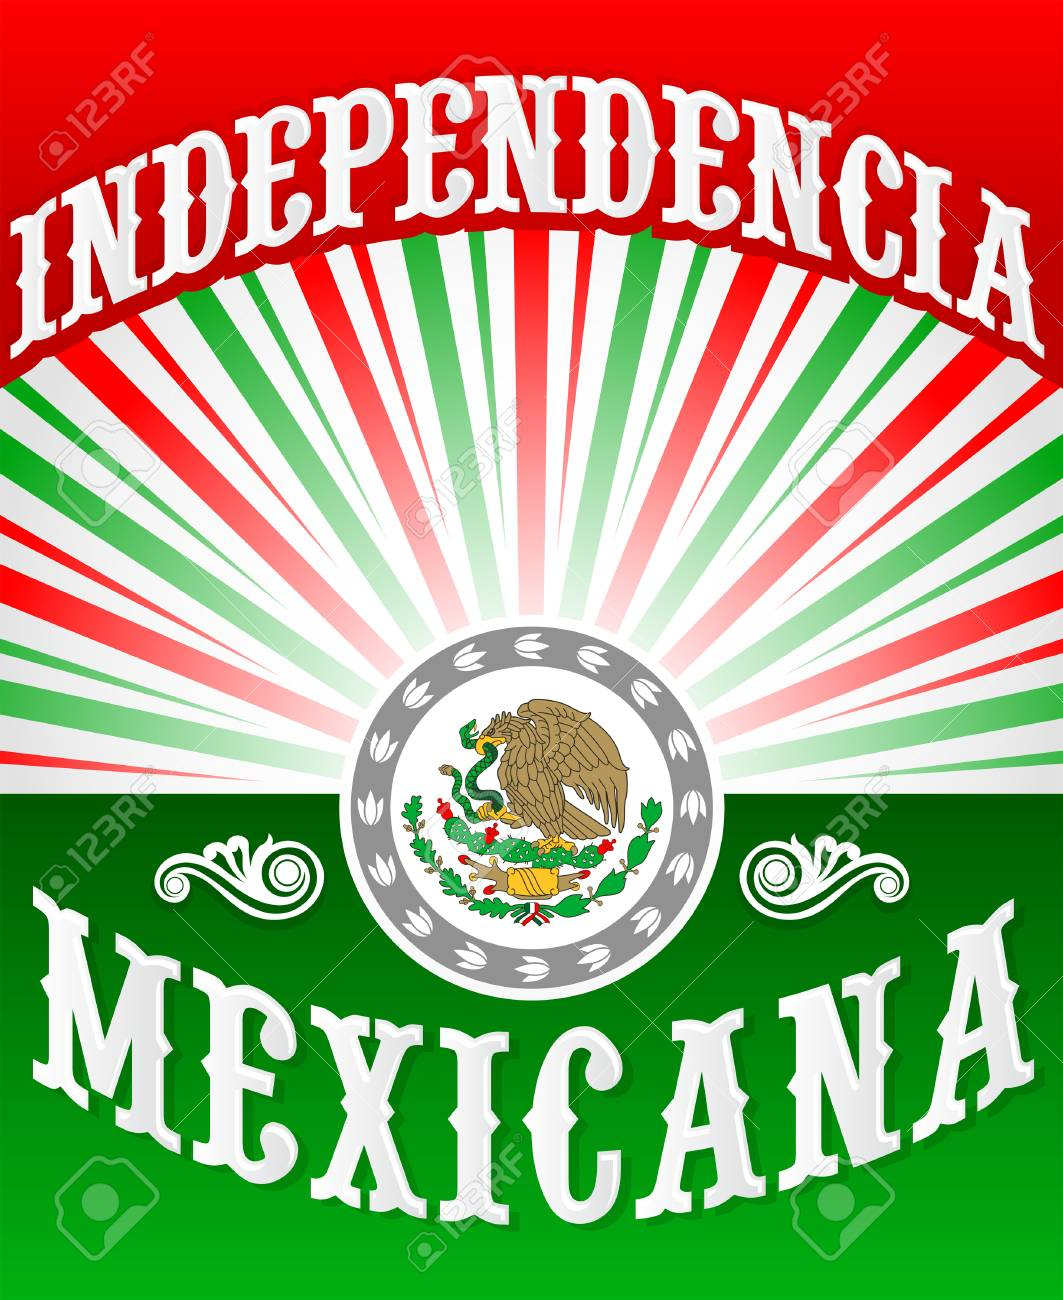 Independencia Mexicana Mexican Independence Spanish Text Poster